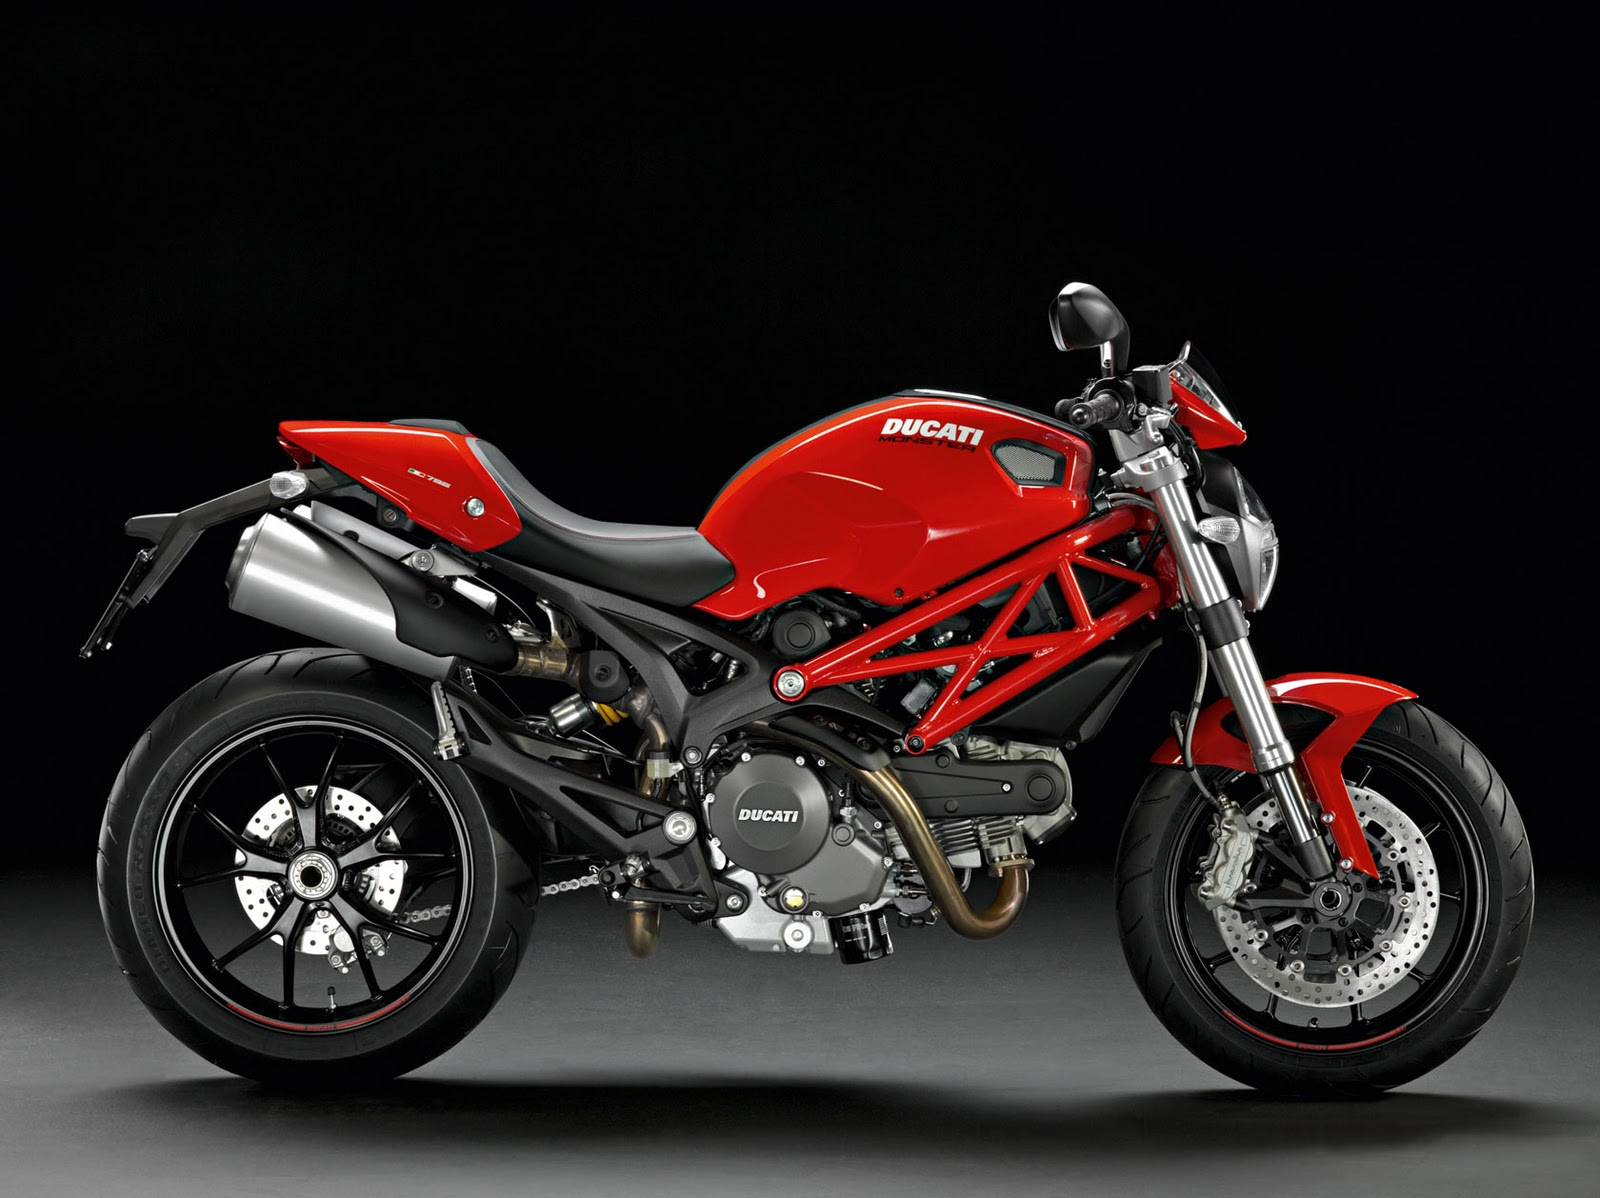 ducati motorcycle pictures ducati monster 796 2011. Black Bedroom Furniture Sets. Home Design Ideas